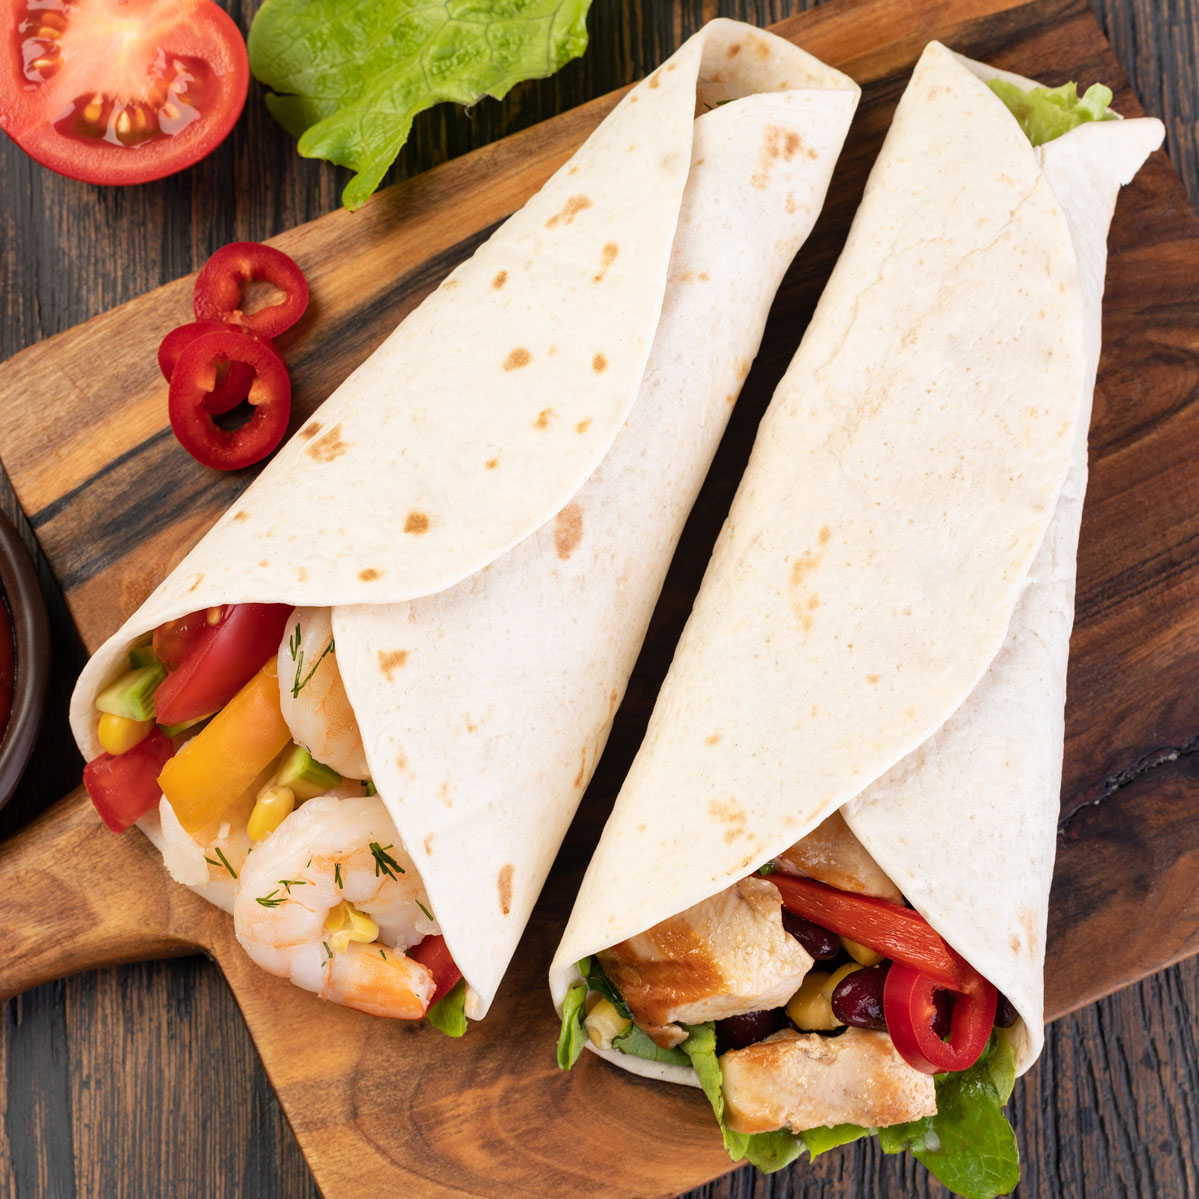 burrito-with-vegetables-and-tortilla-49M2SZ6